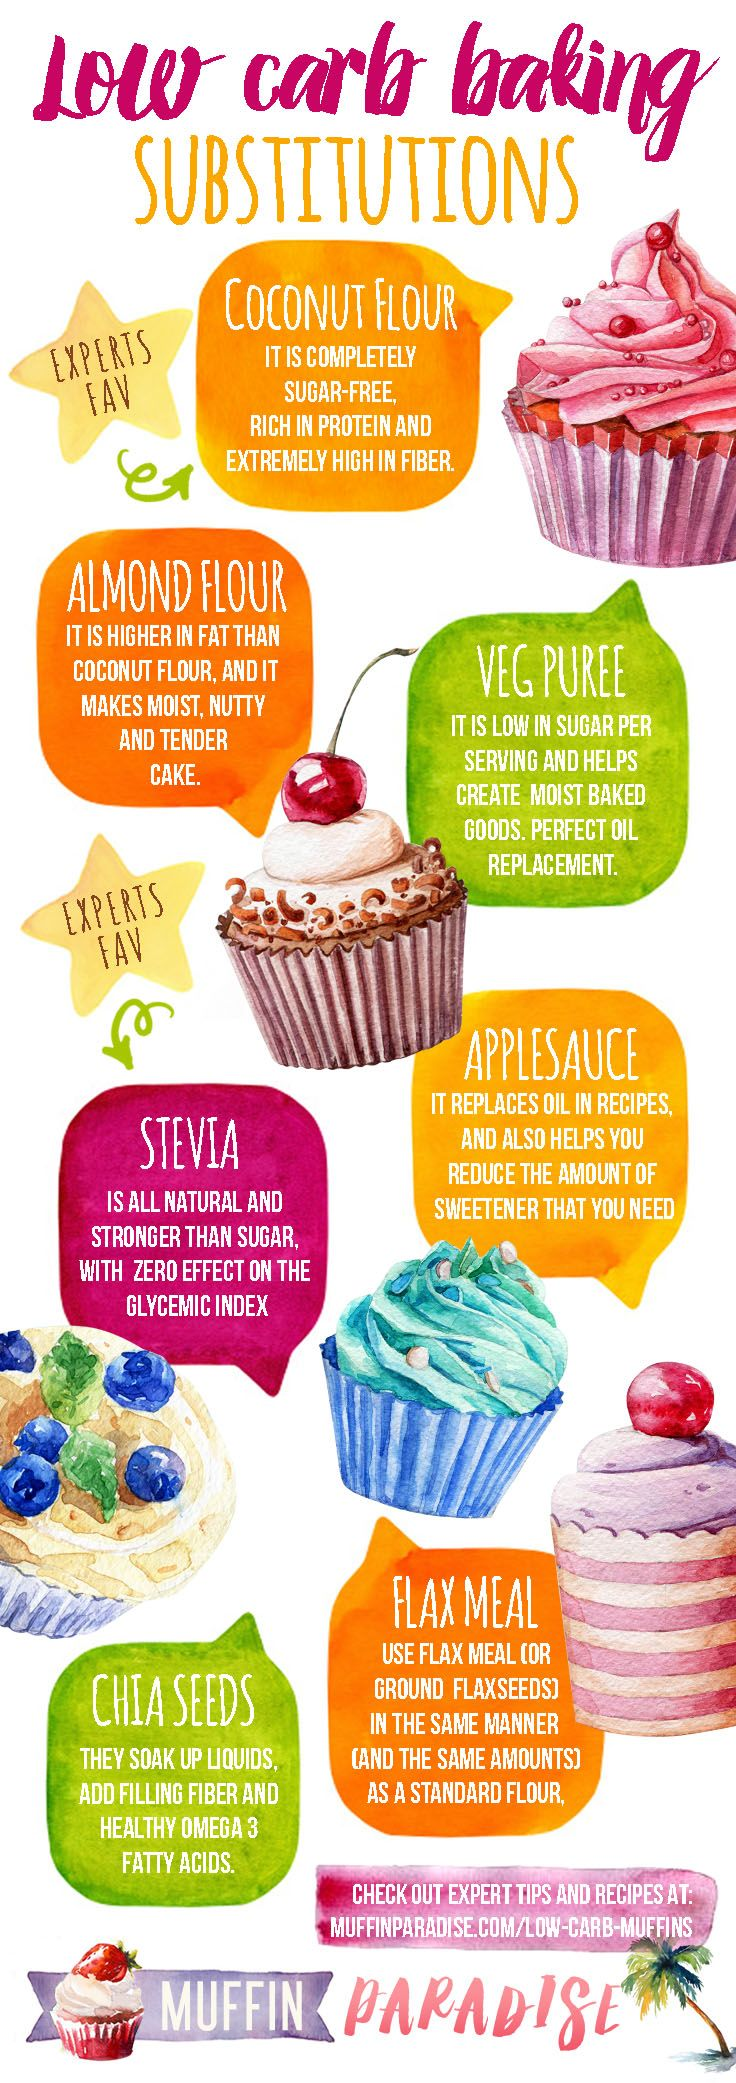 I'm baking low carb muffins! INFOGRAPHIC - keto, paleo, gluten free. Bake with Charlotte at muffinparadise.com